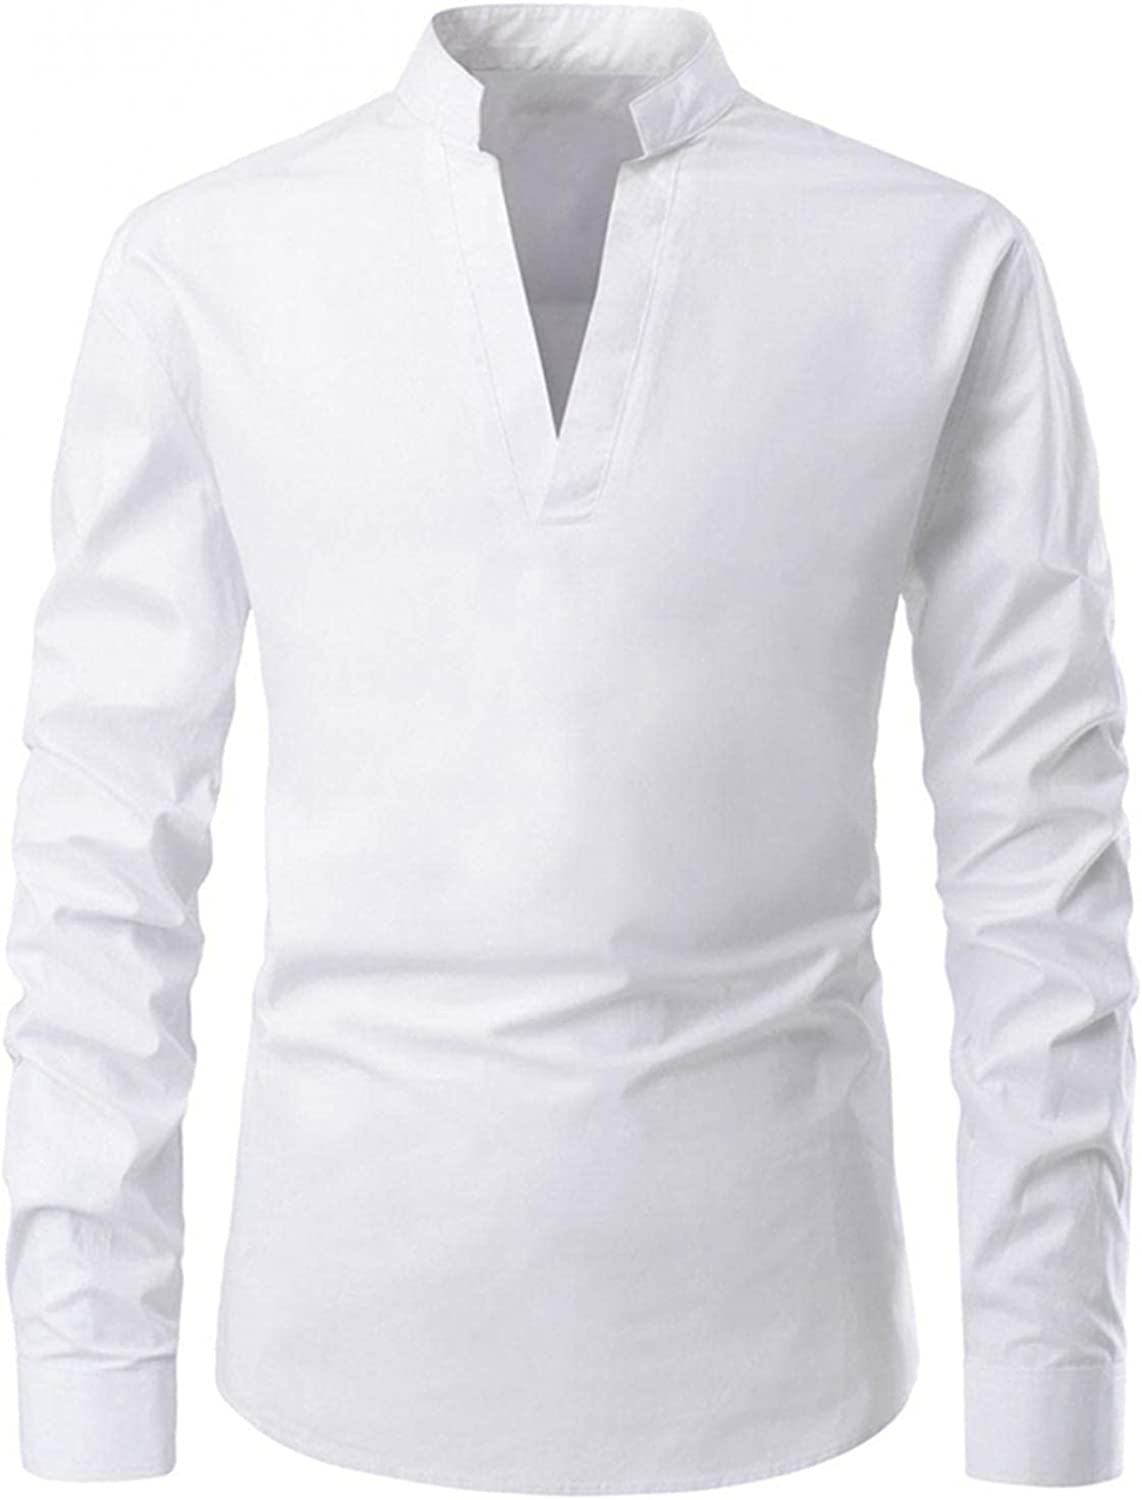 WUAI-Men Slim Fit Henley Shirts Casual Long Sleeve V-Neck Stretch Banded Collar Fashion Hippie Athletic Muscle Tops